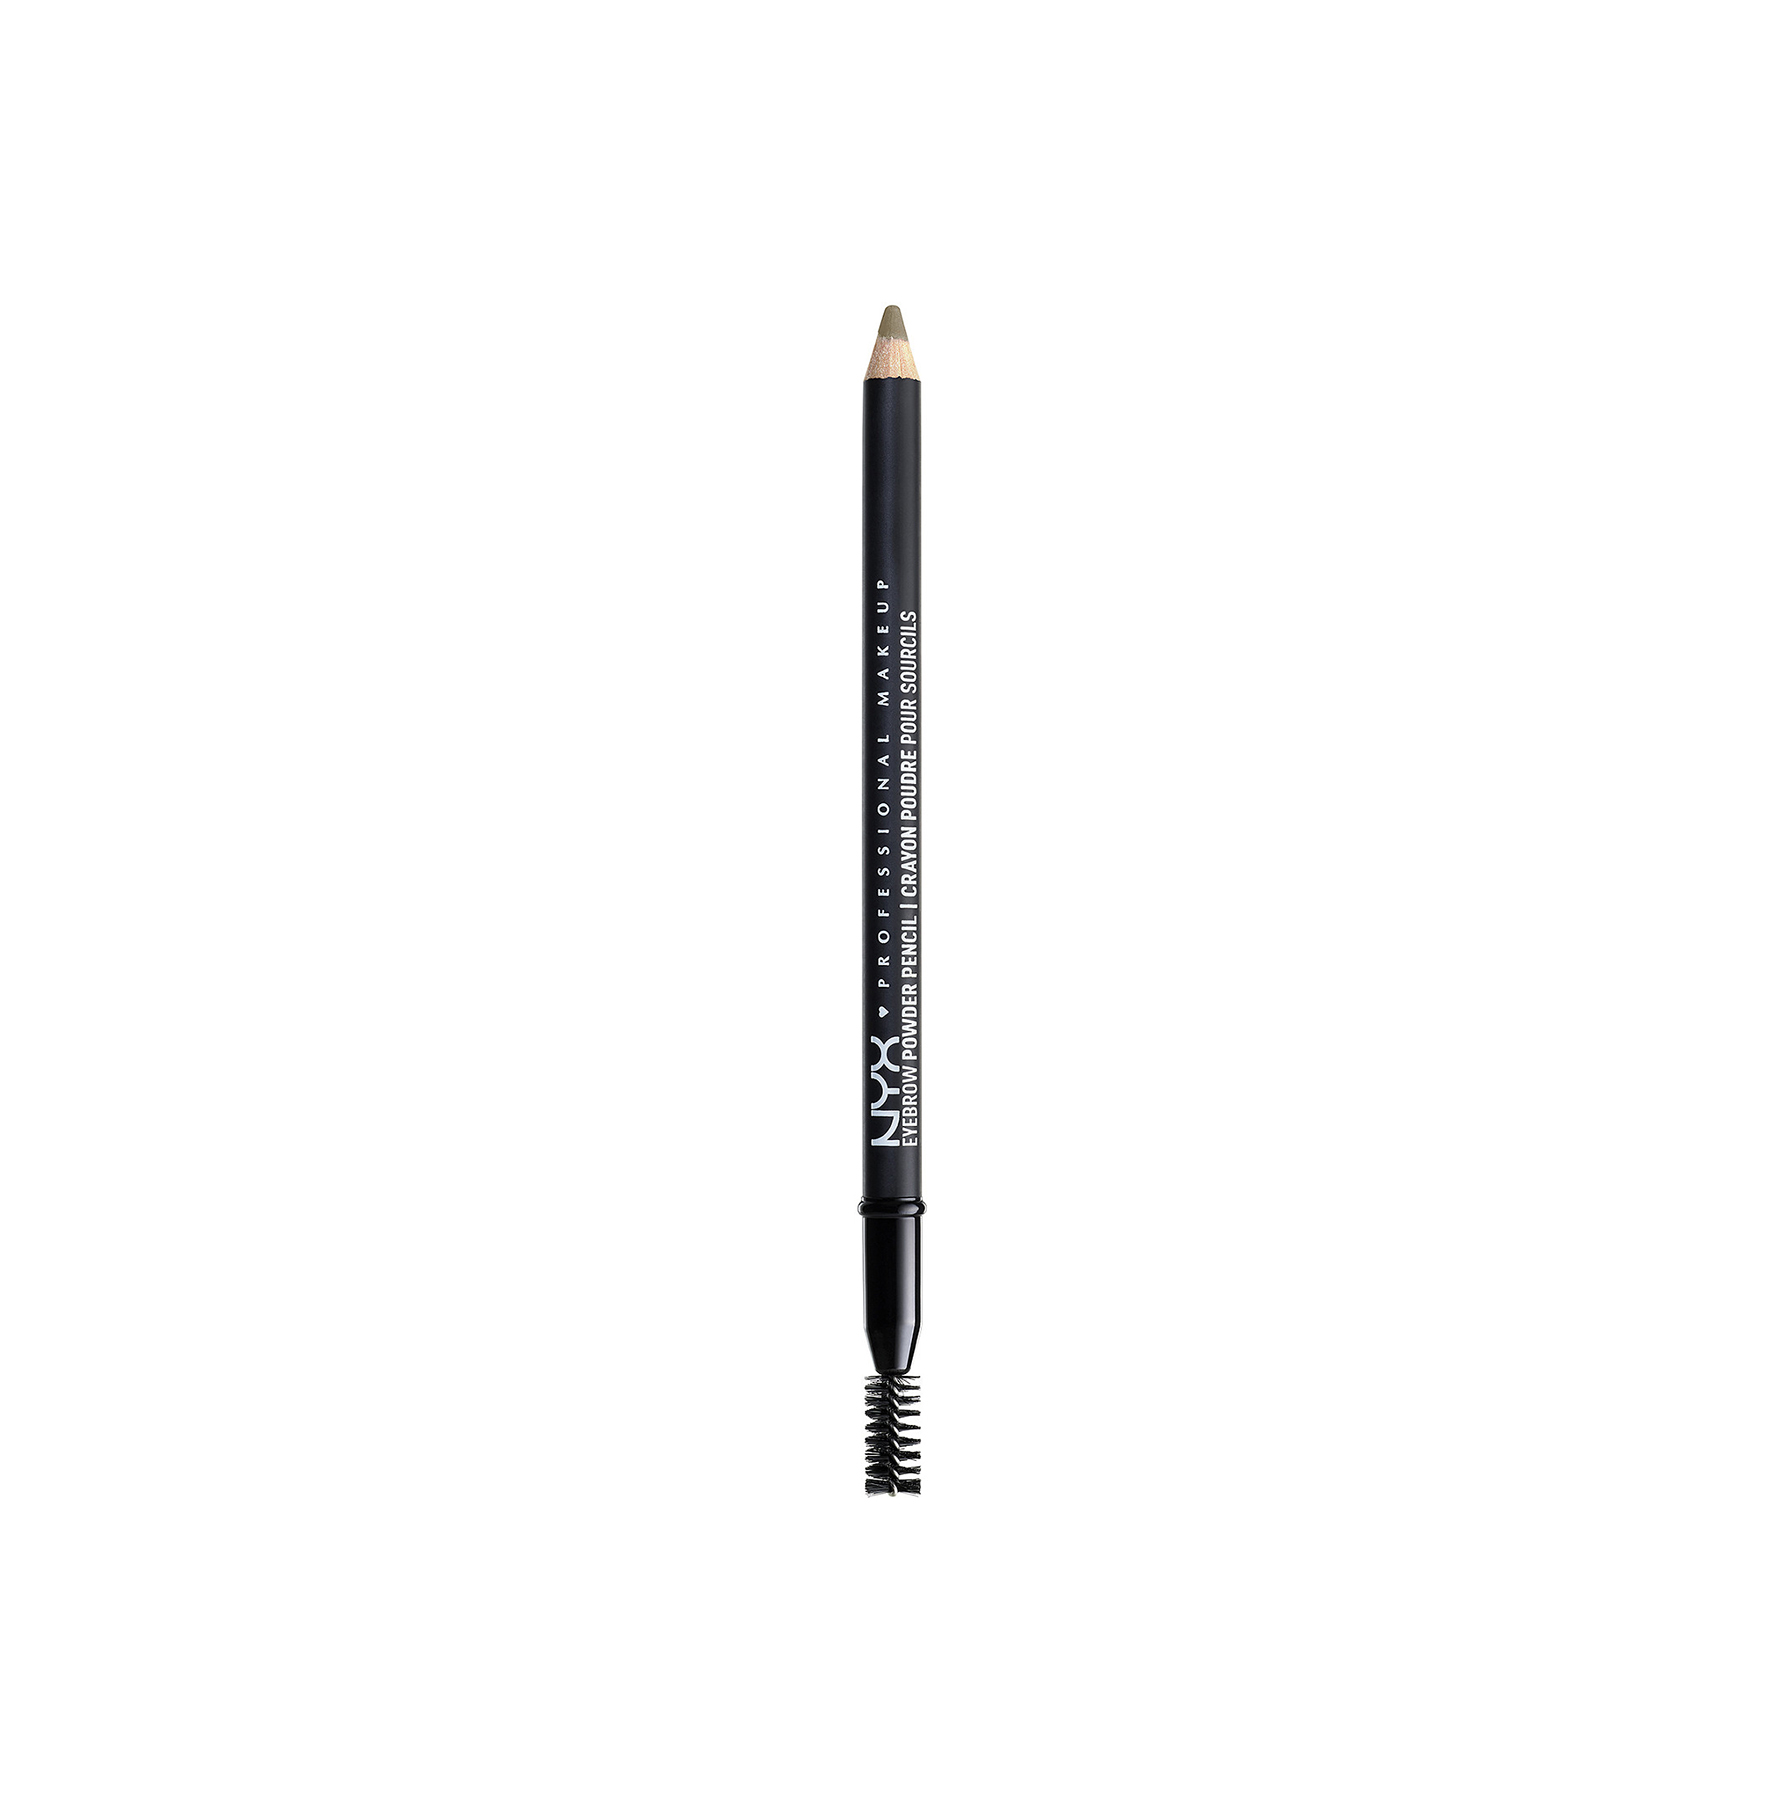 Full Eyebrows: NYX Eyebrow Powder Pencil